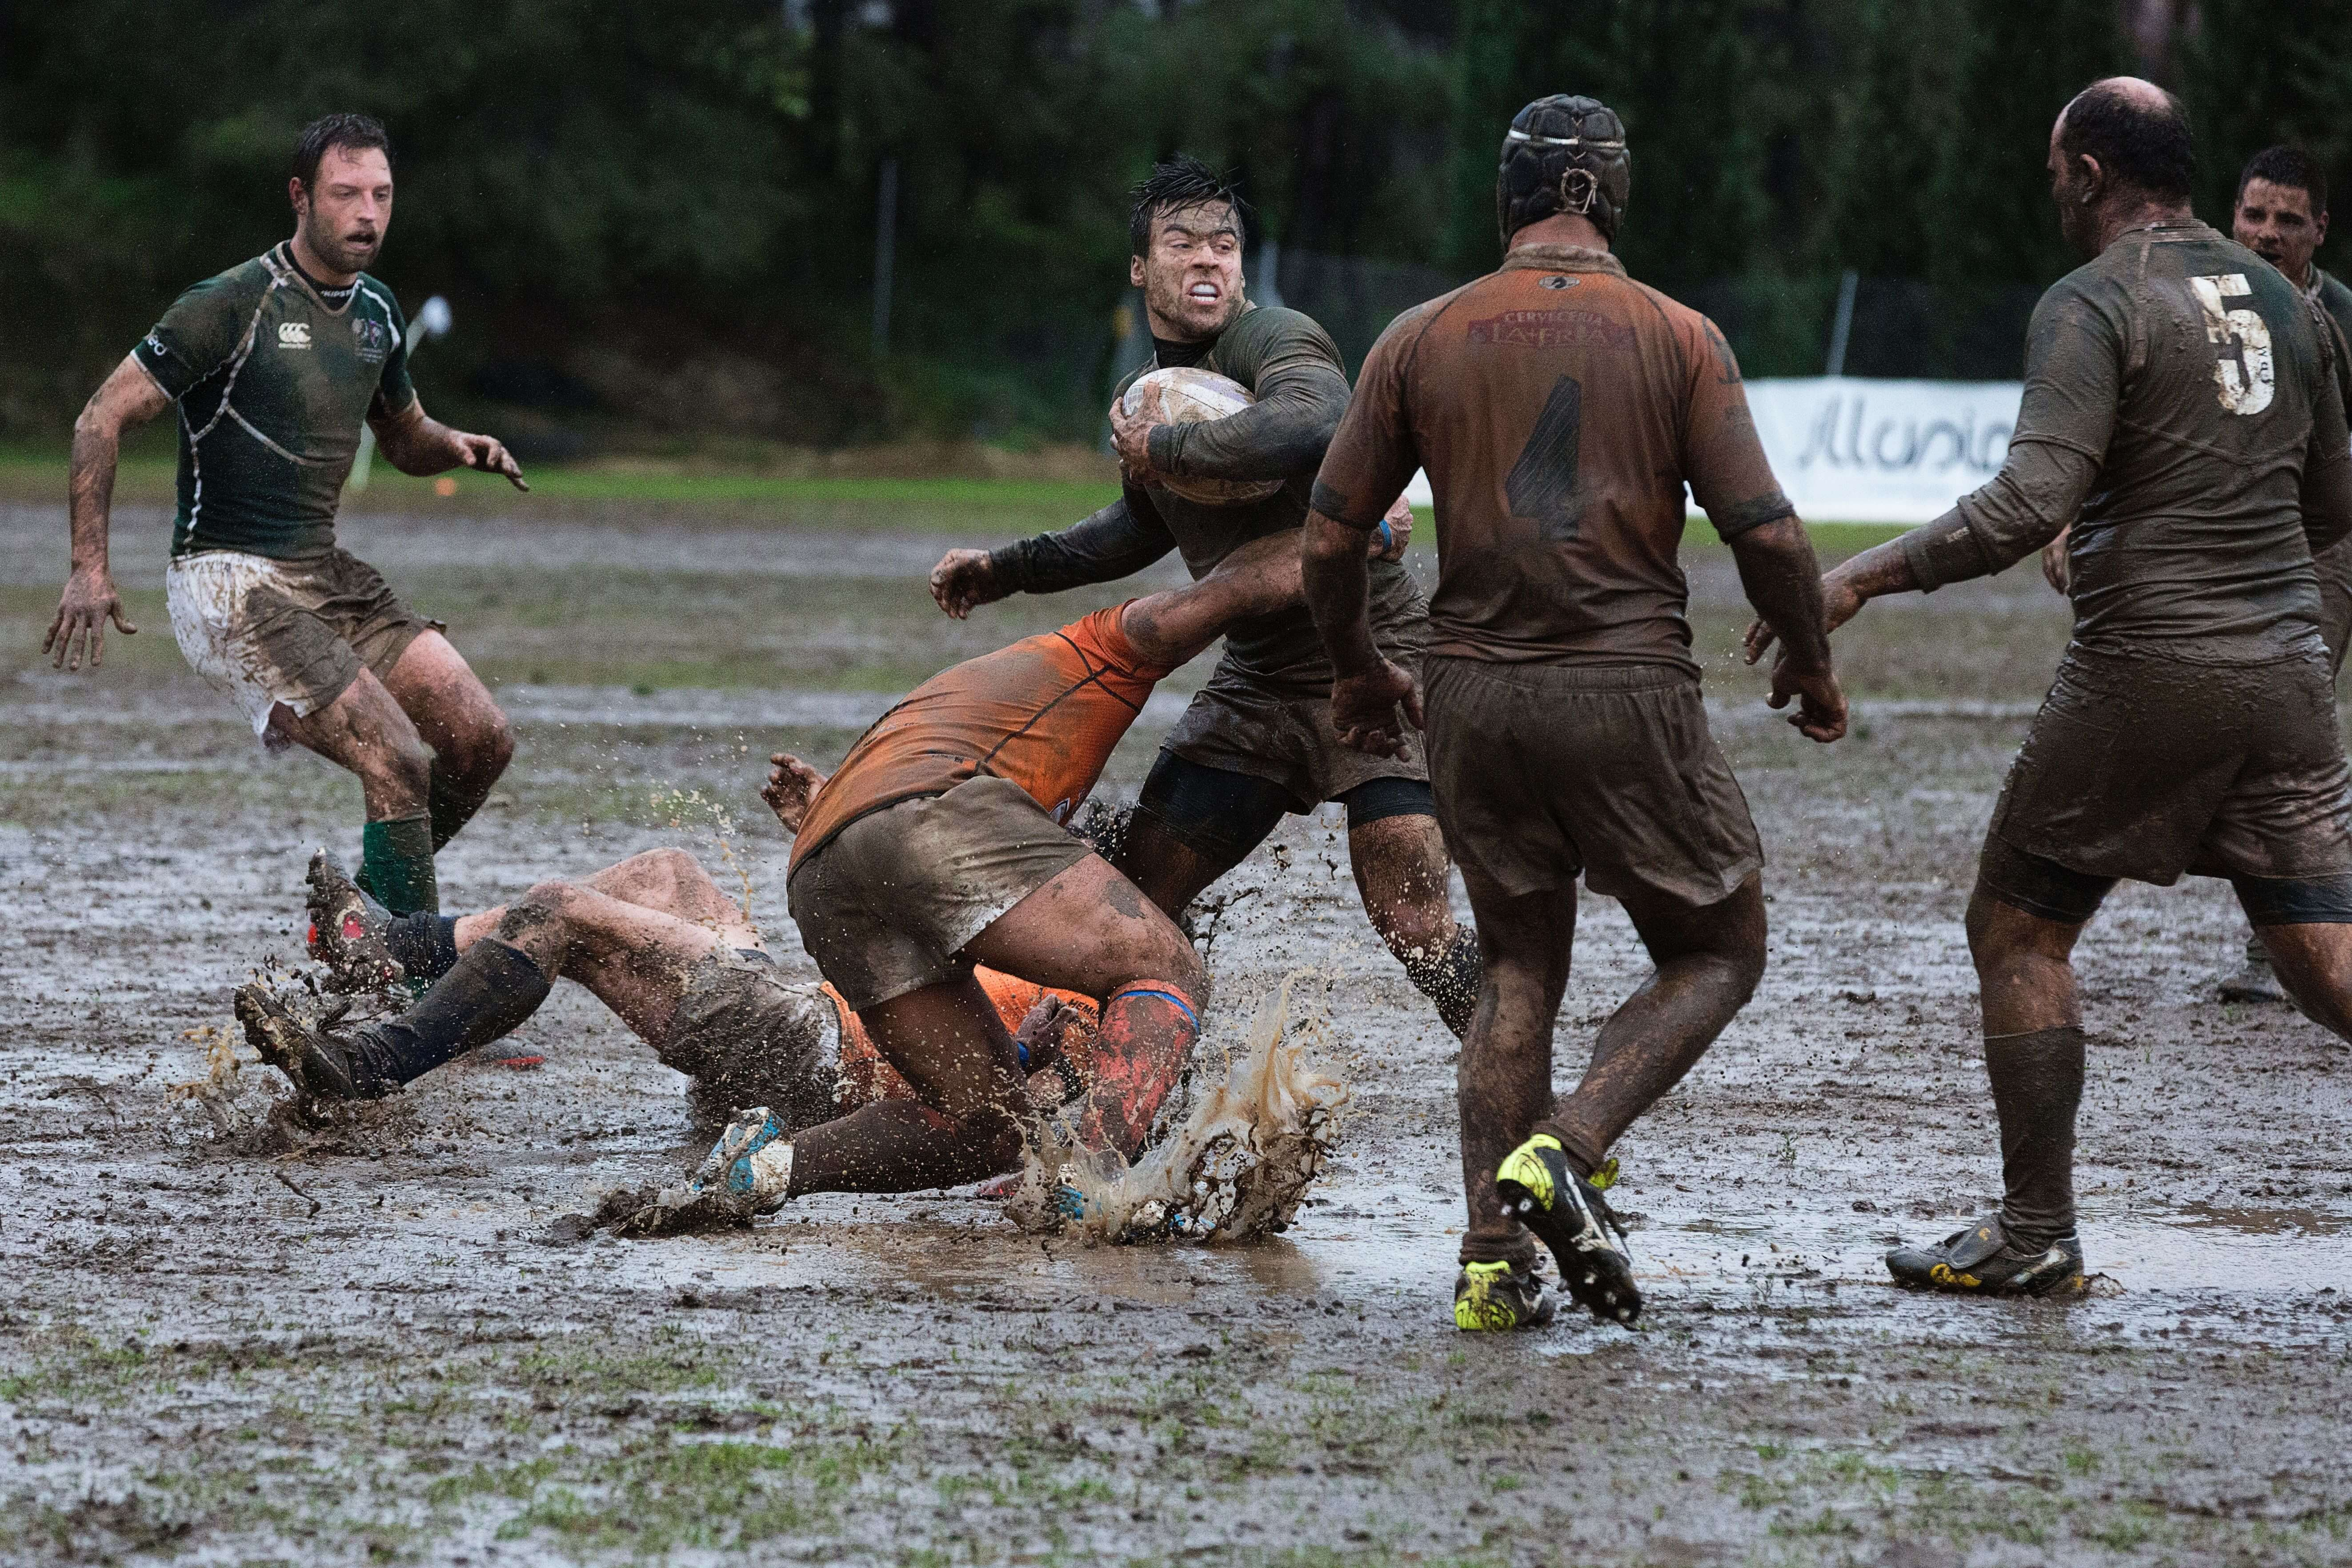 Dirty rugby match